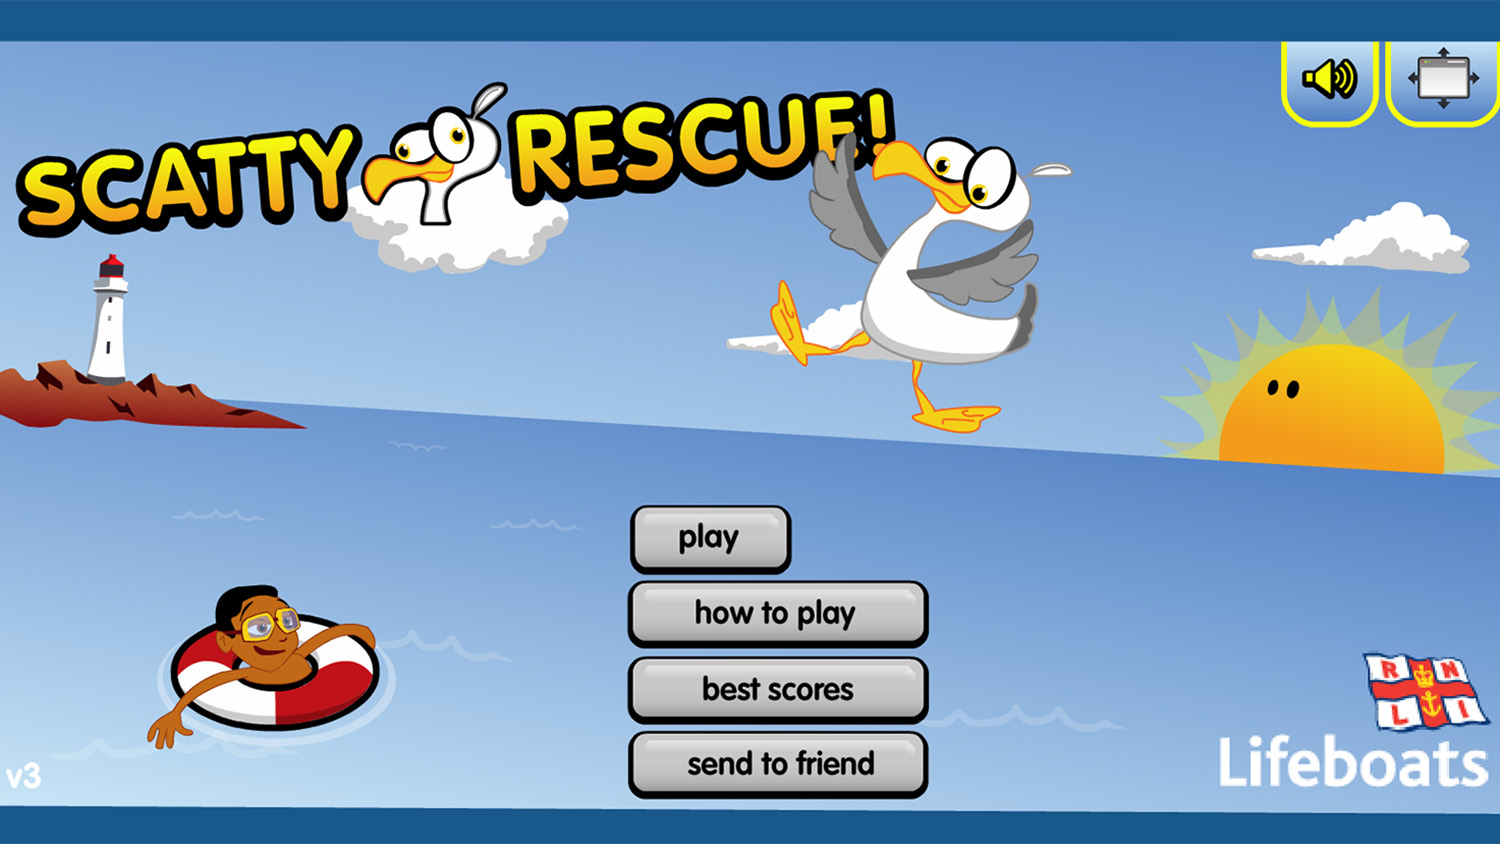 Scatty rescue online game